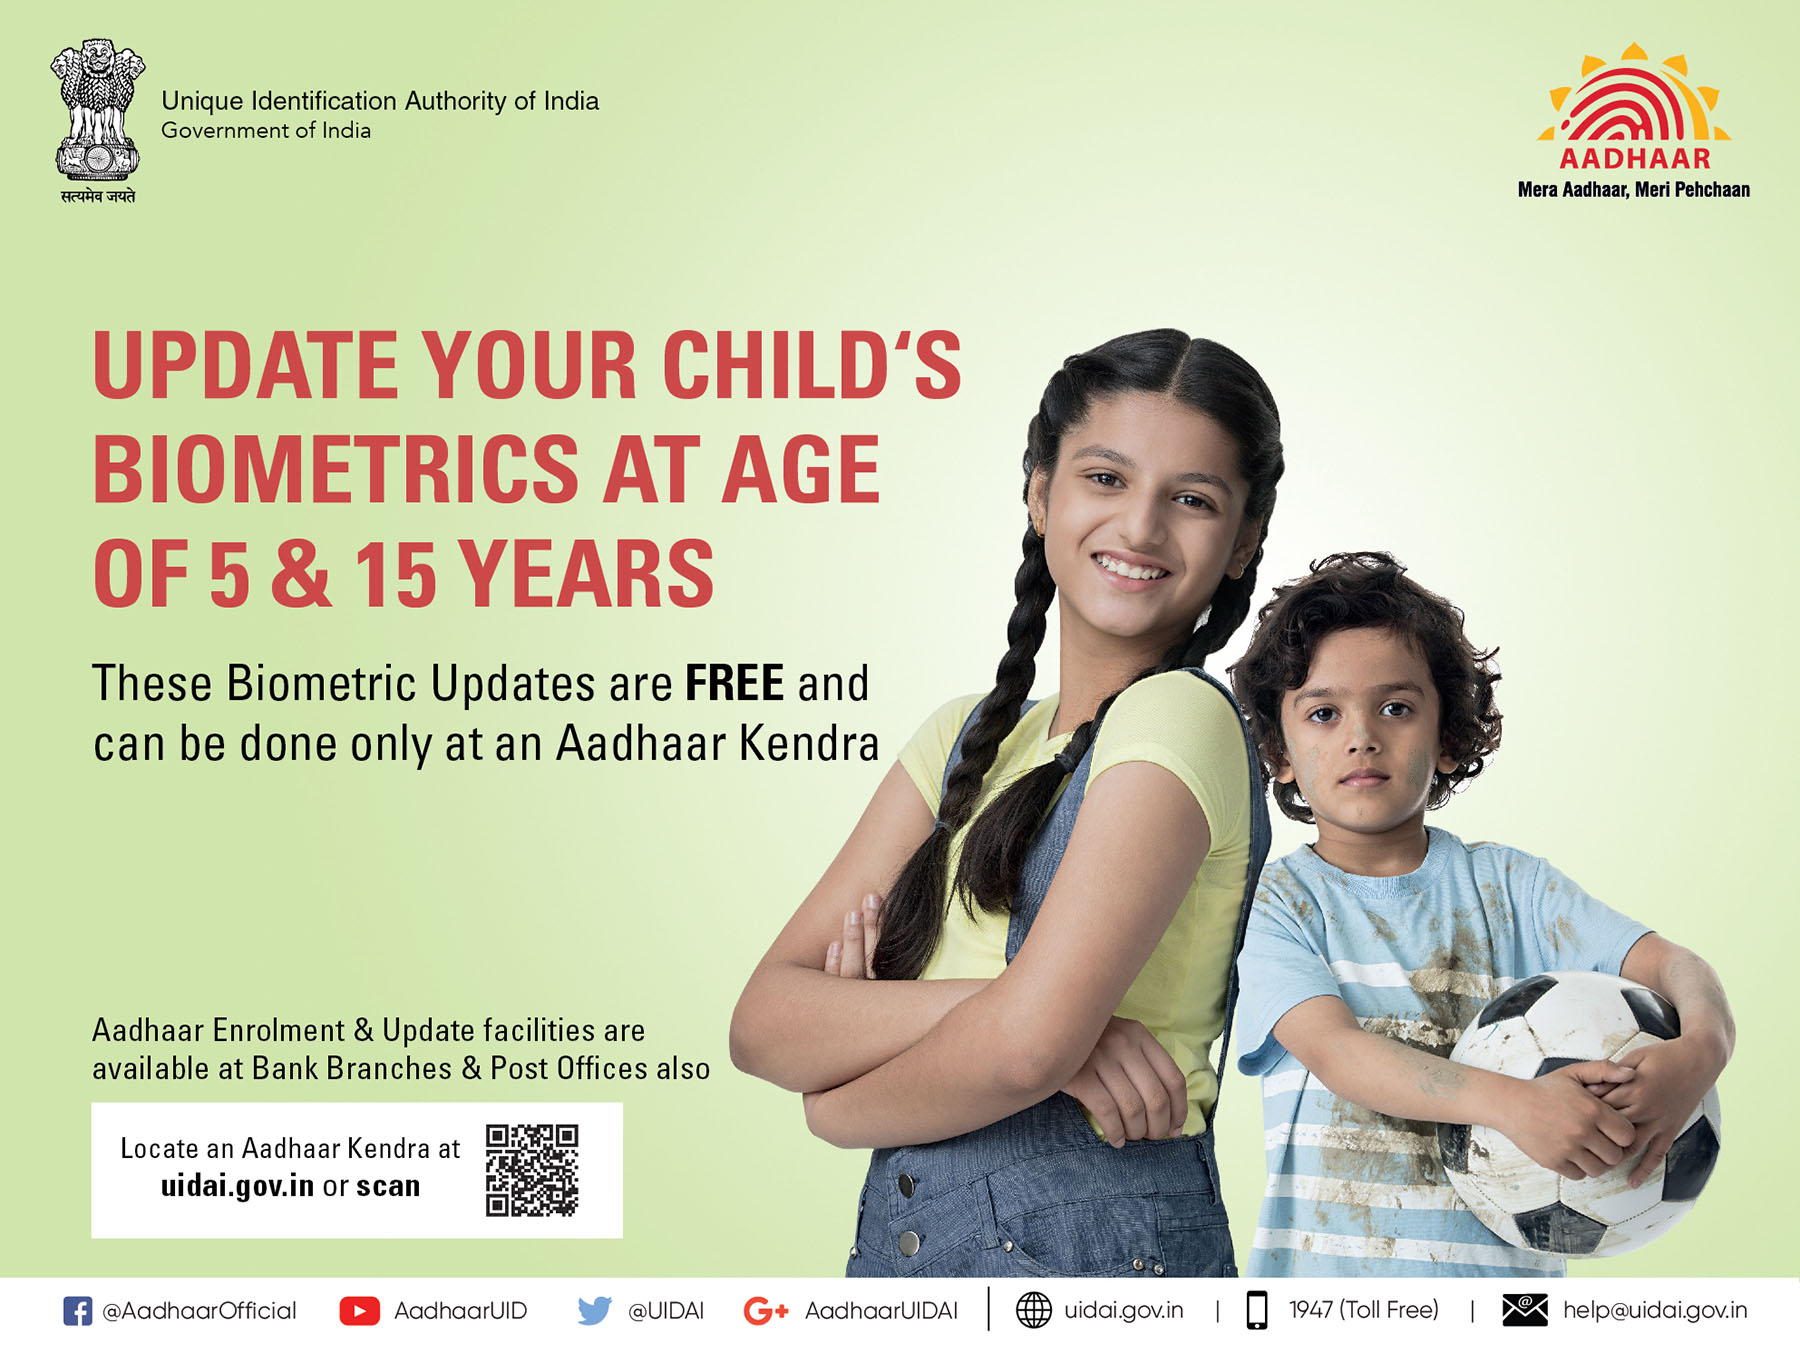 Update your child's biometrics at age 5 & 15